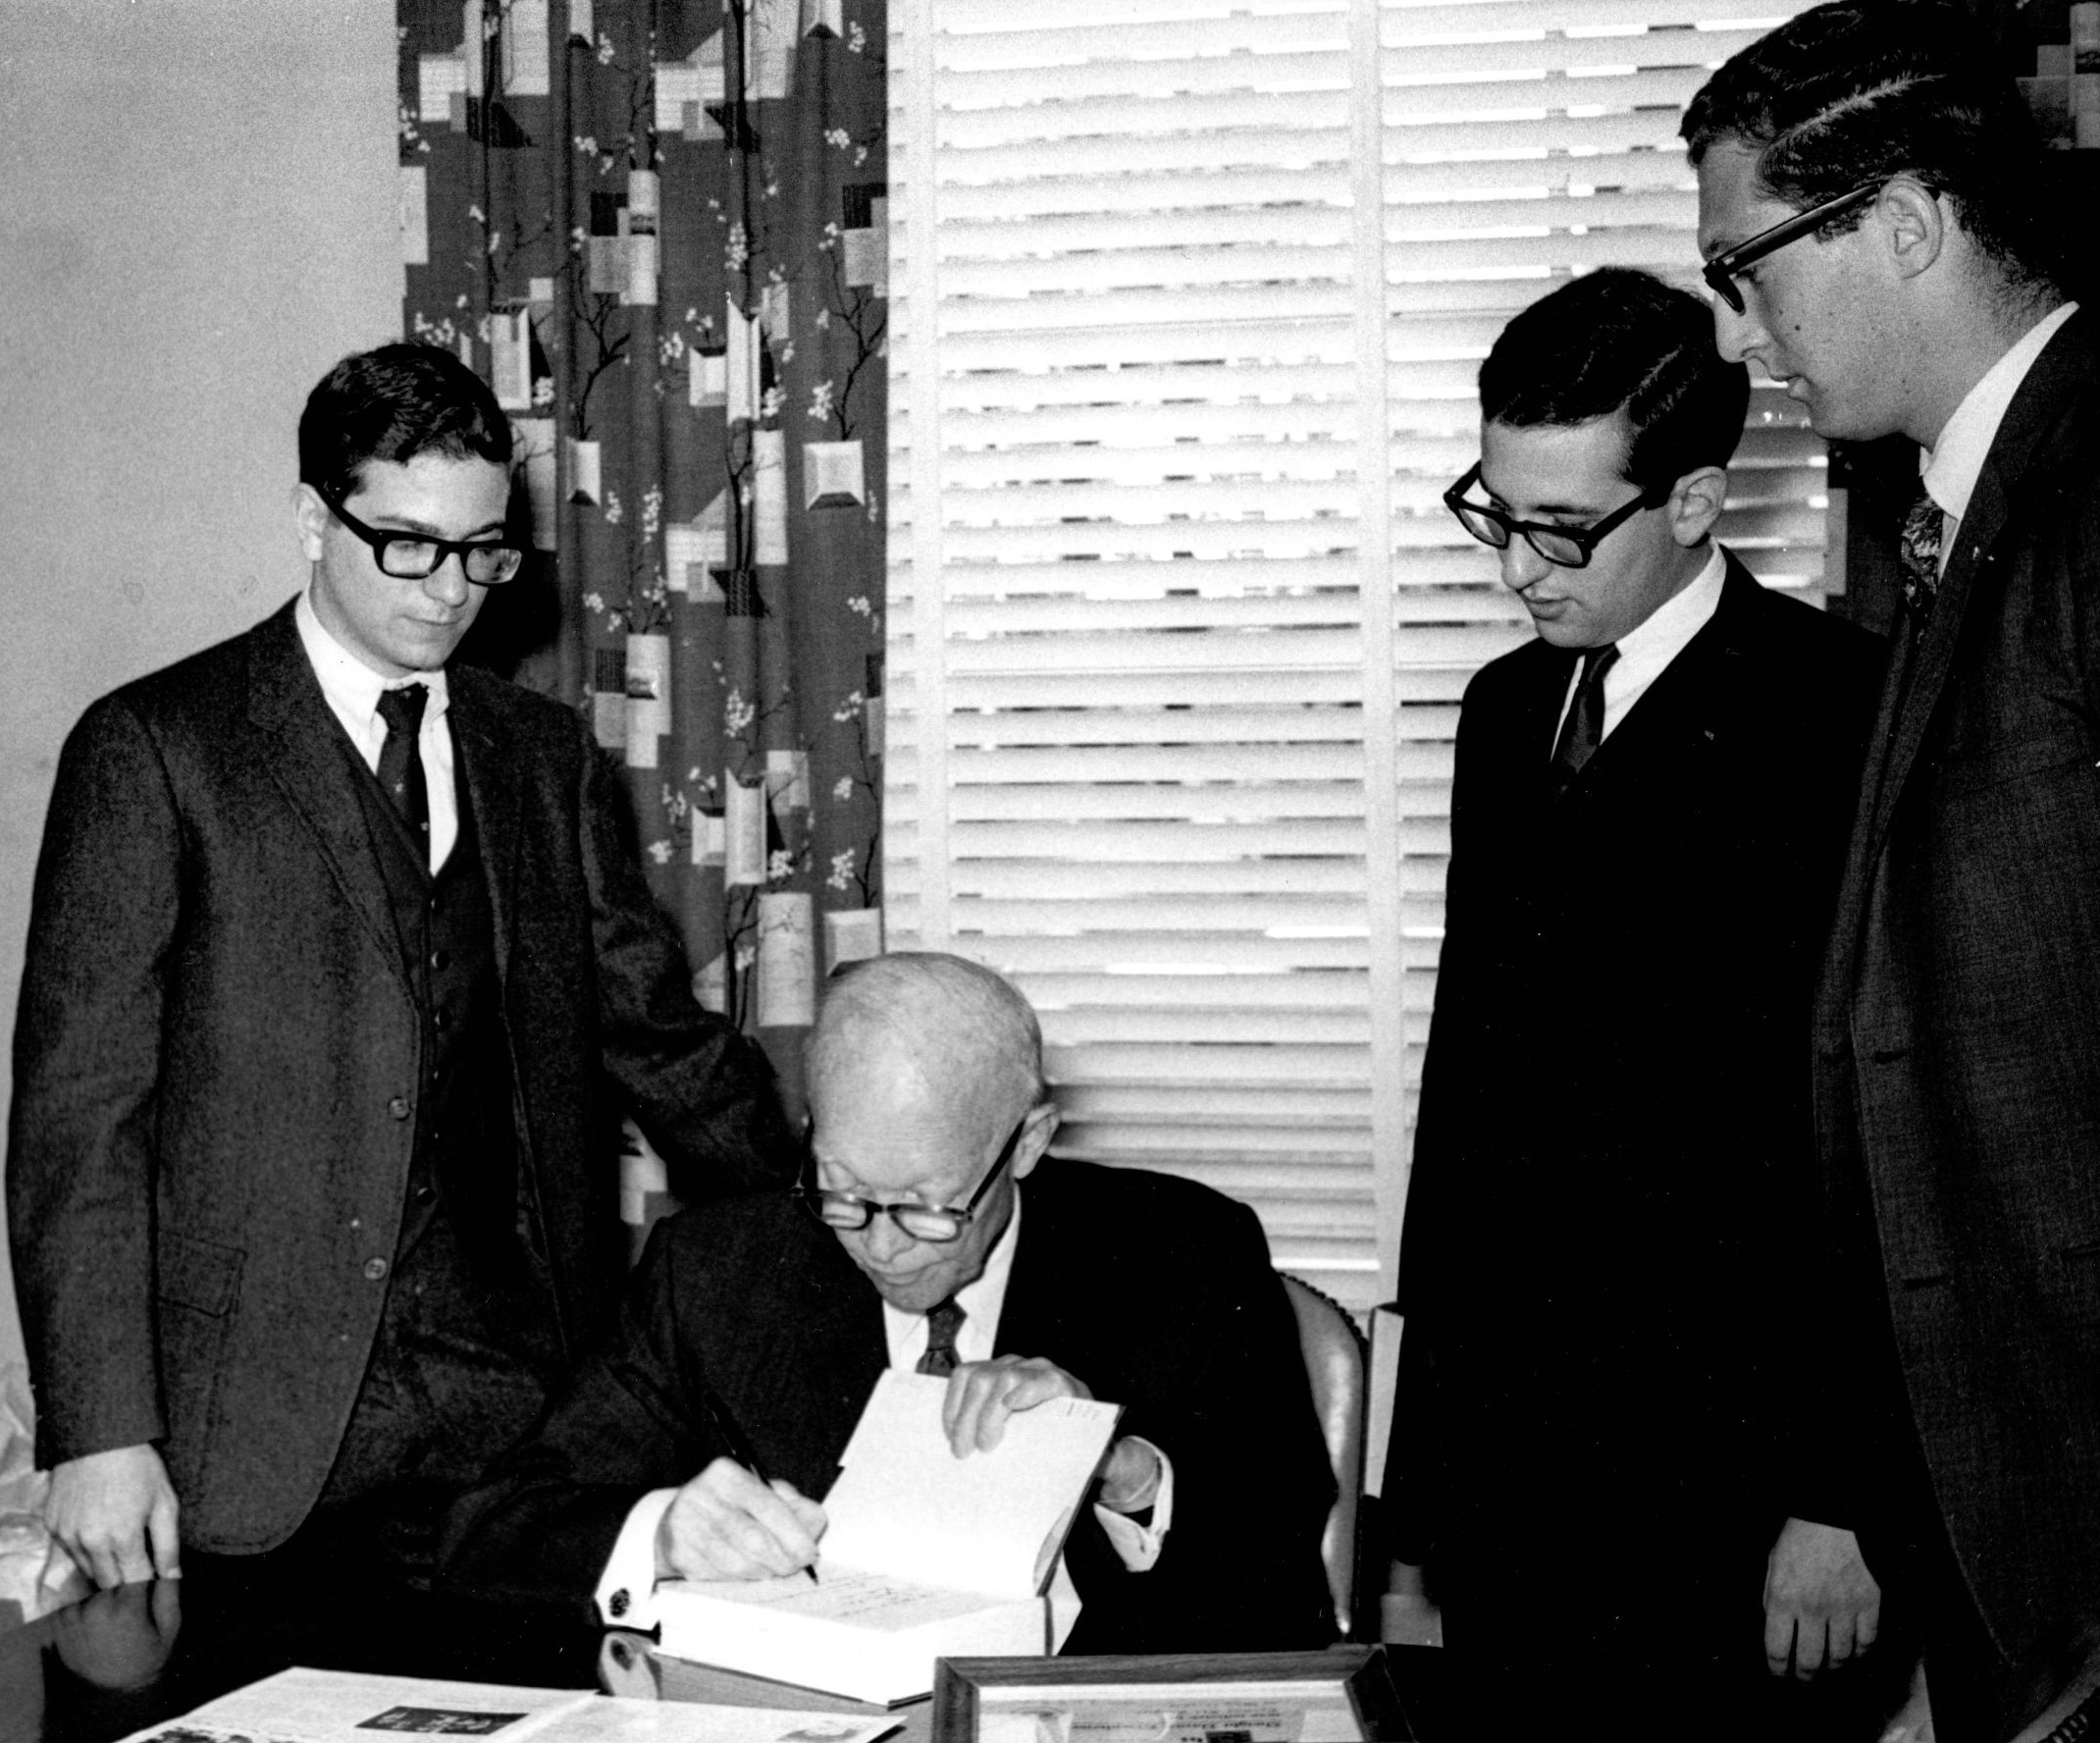 Dwight D. Eisenhower with Stan Abramson, Mike MarkowicH and Jeff Steinhorn while being presented Tau Epsilon Phi Distinguished American Award in 1967. Photo courtesy University Archives.